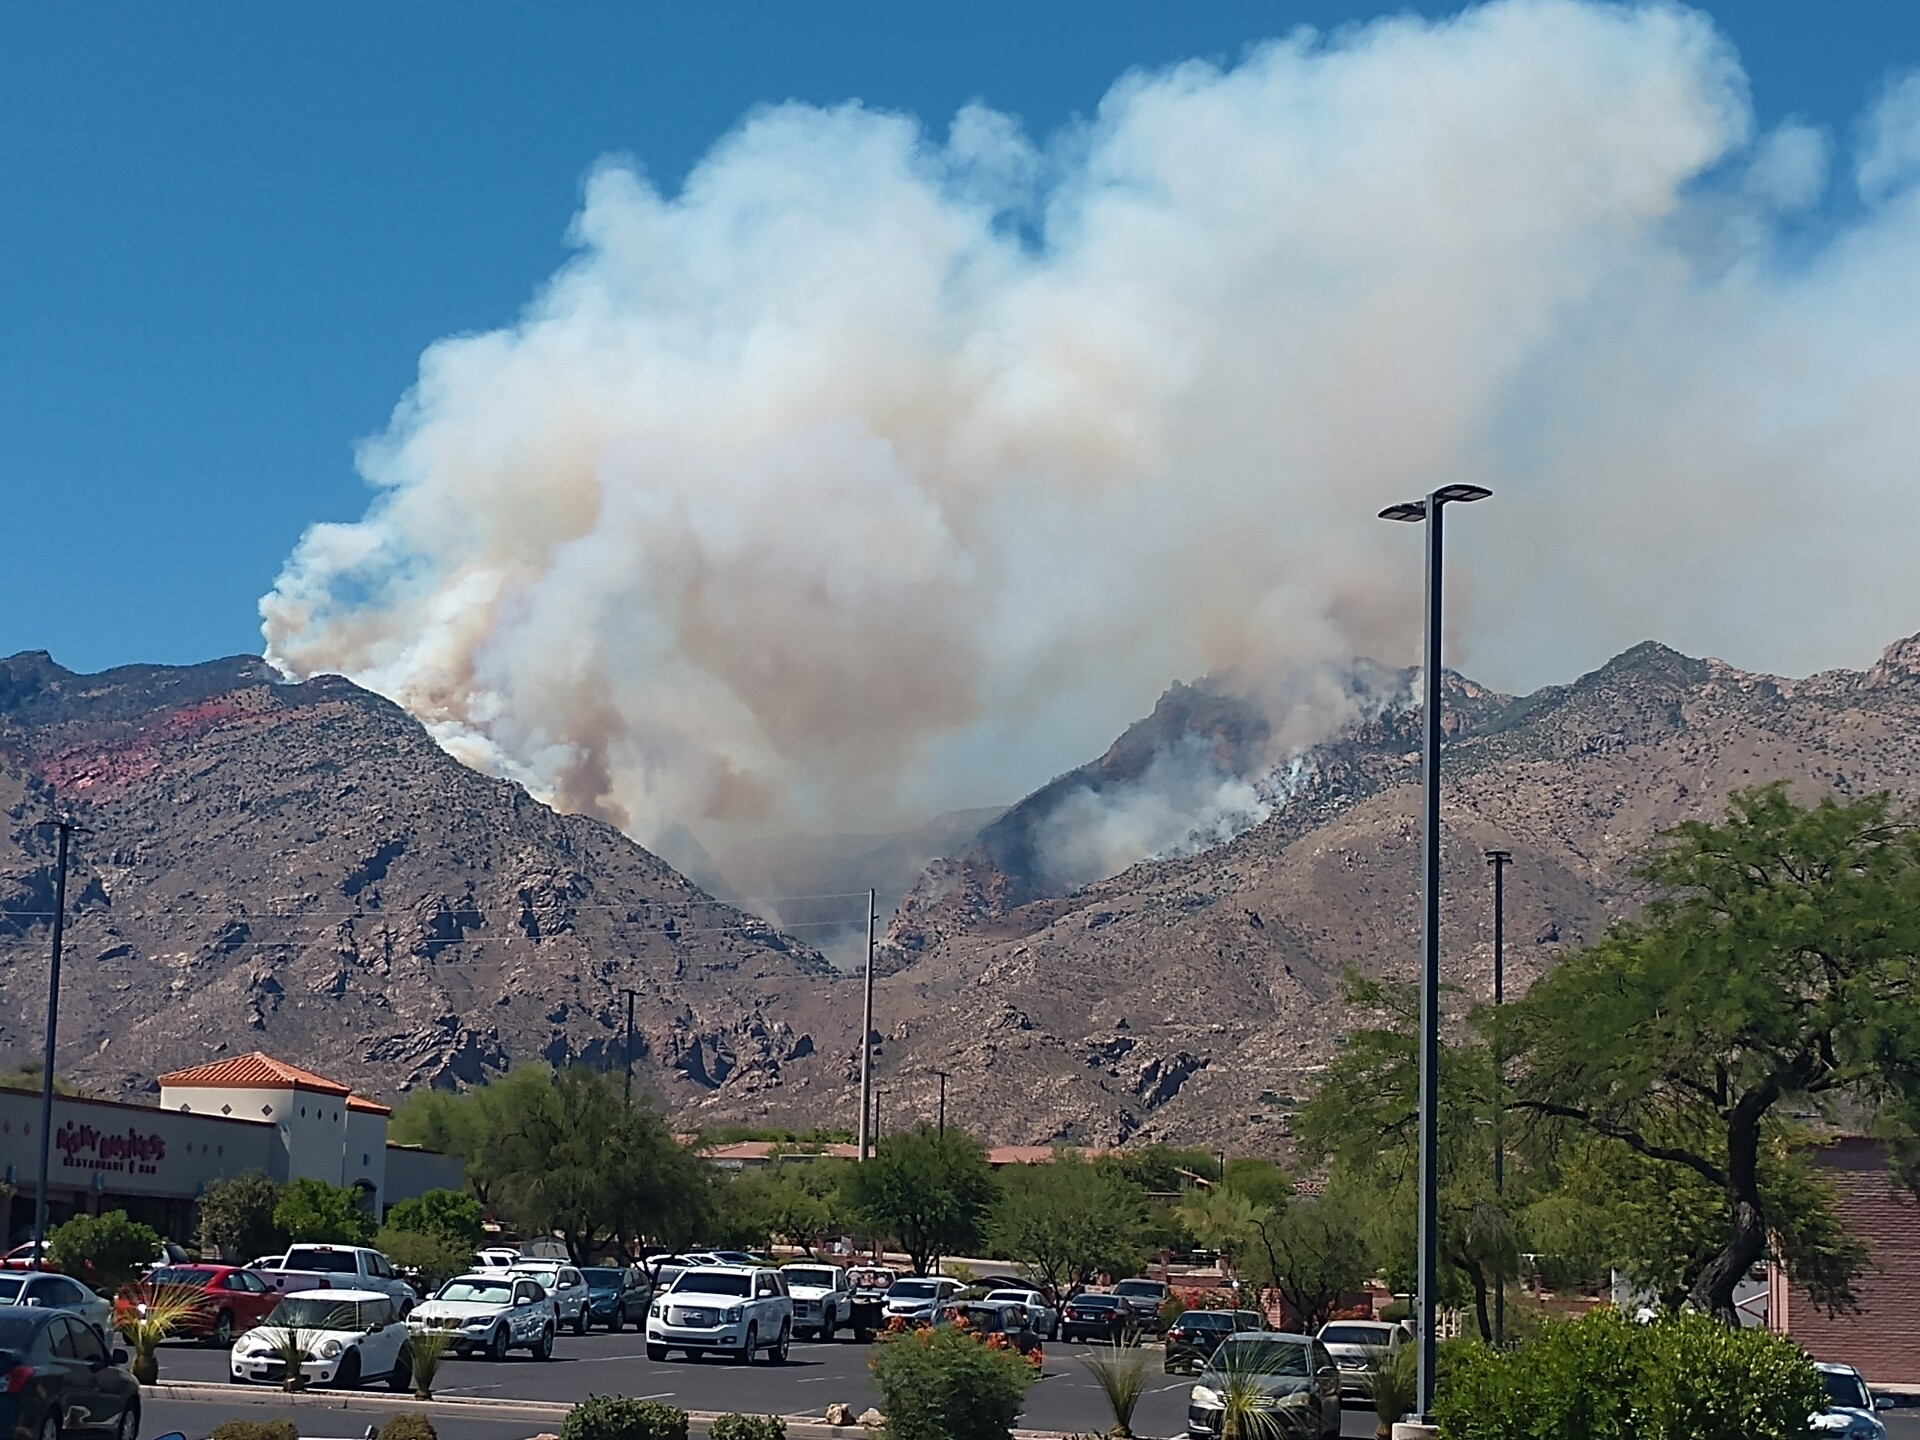 A view of the Bighorn Fire burning in the Catalina Mountains from the Basha's parking lot at Kolb and Sunrise